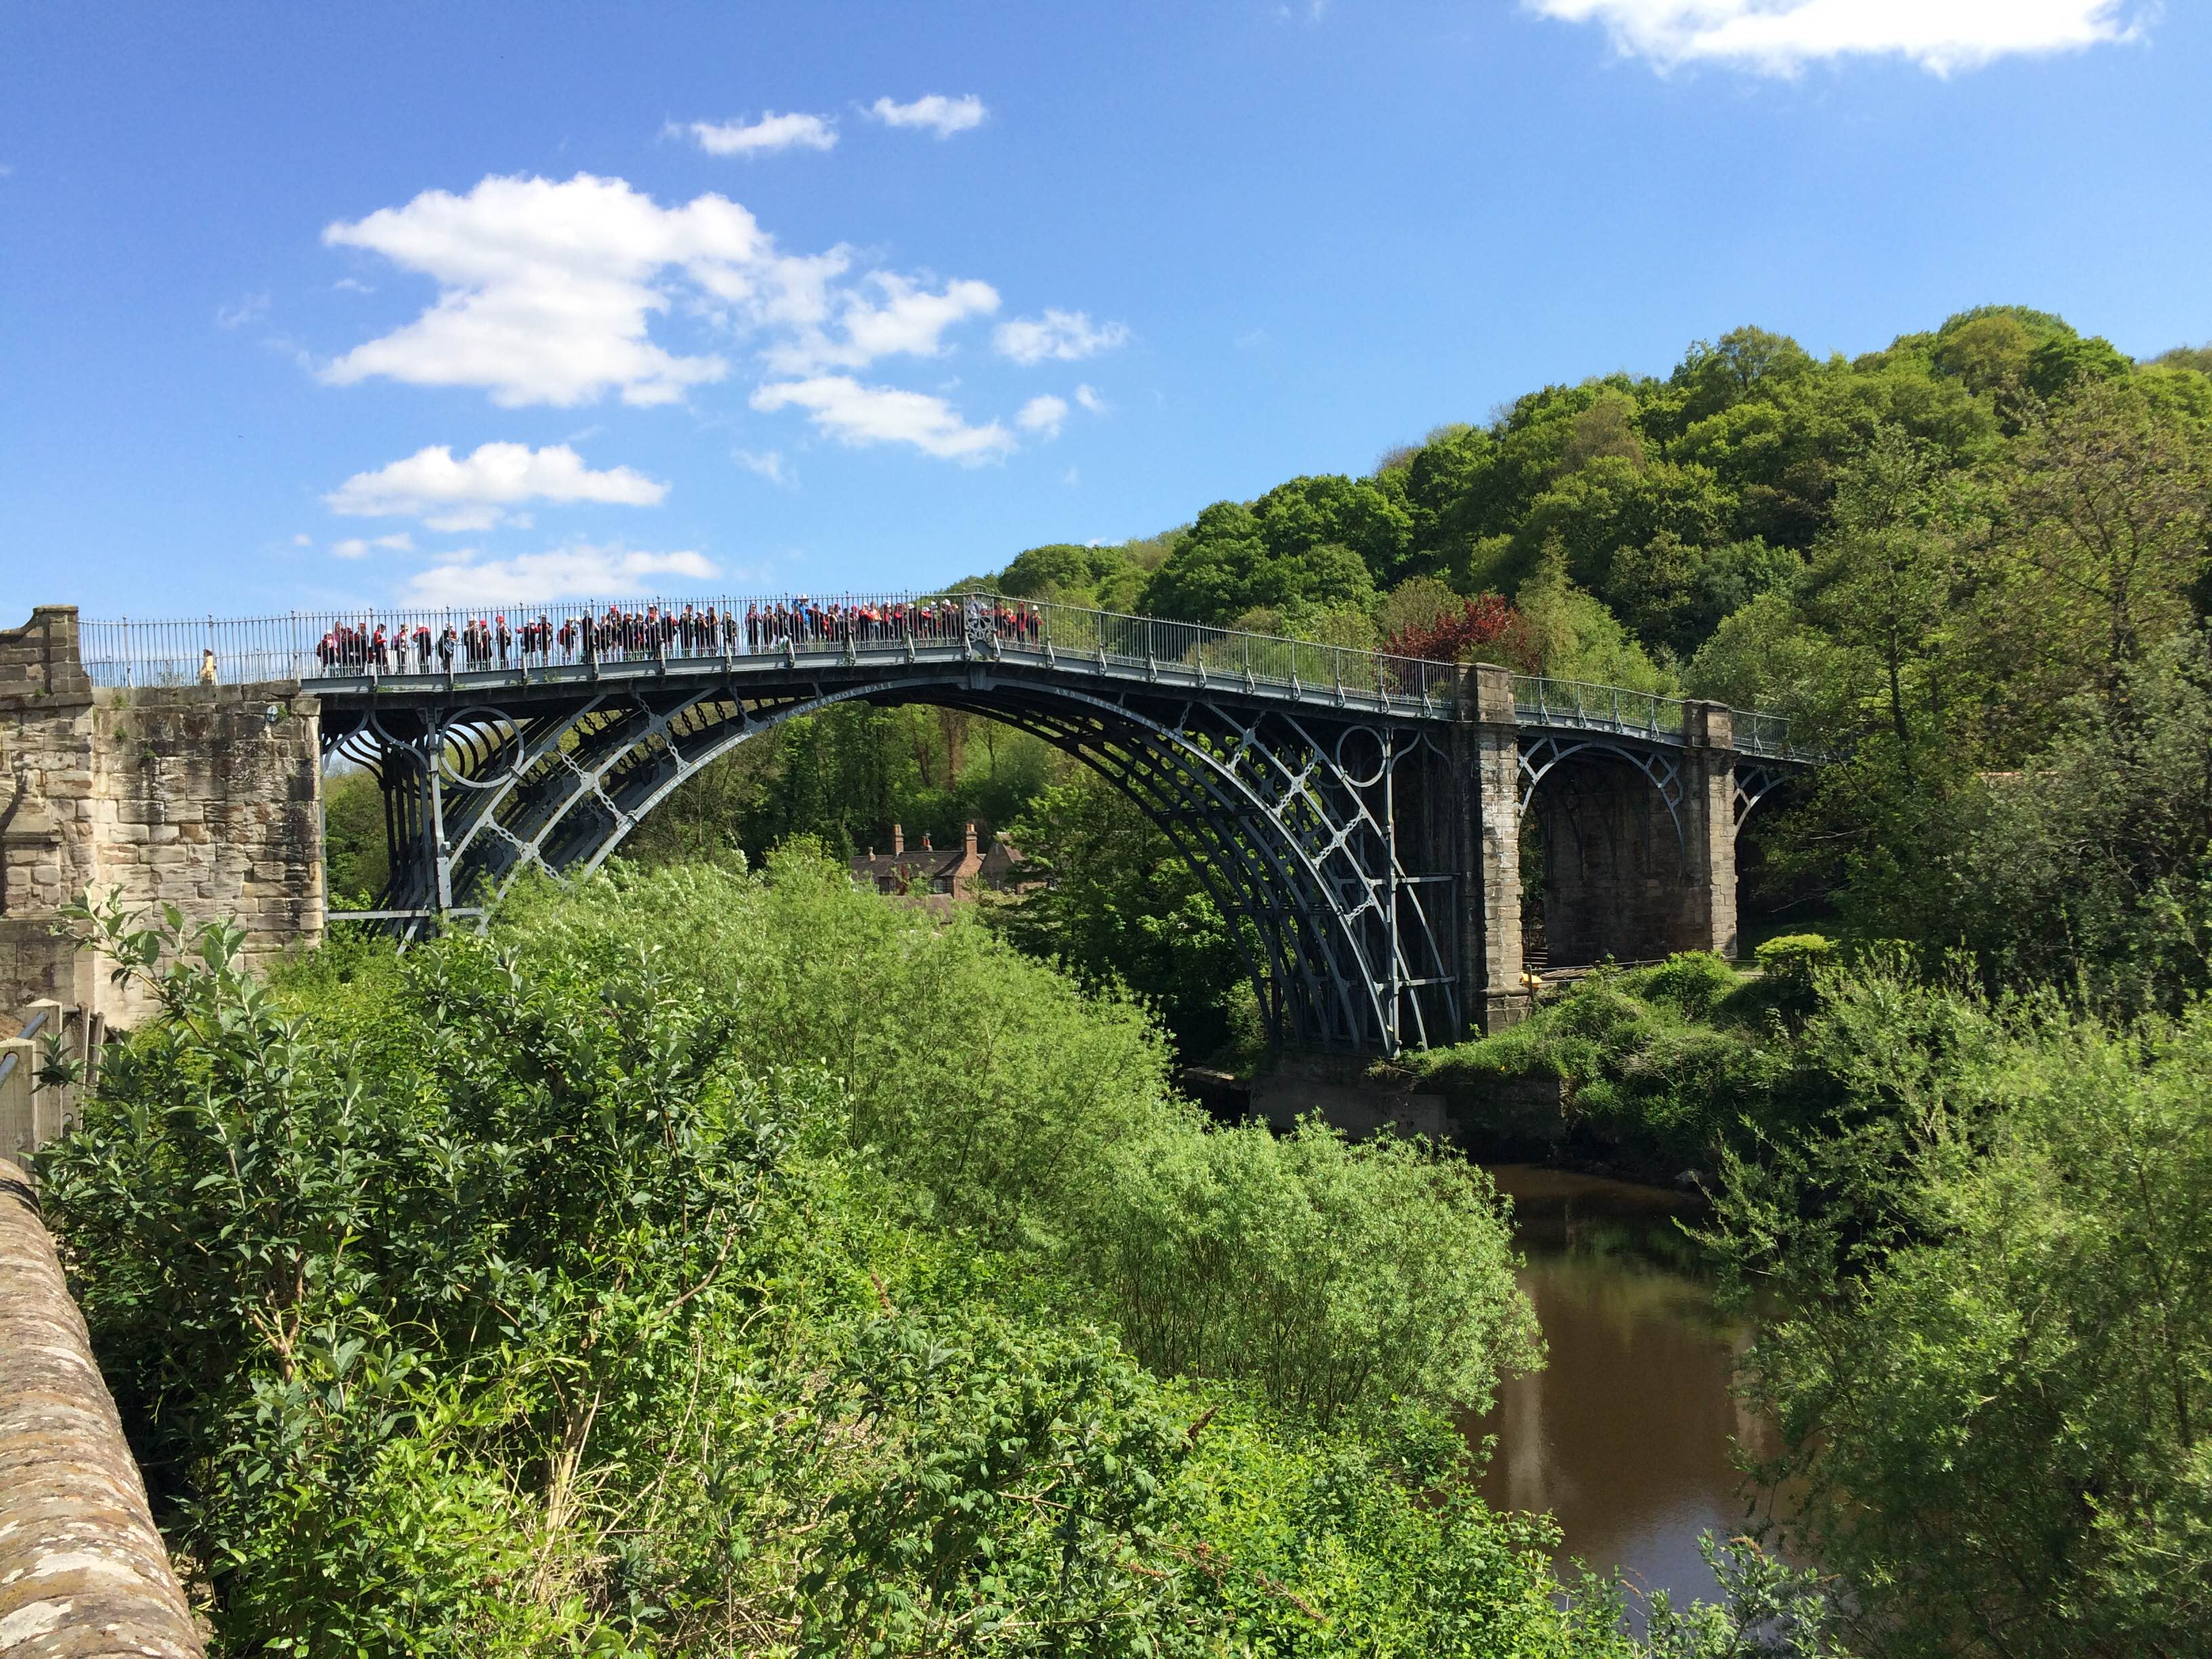 Day 1 On the Ironbridge